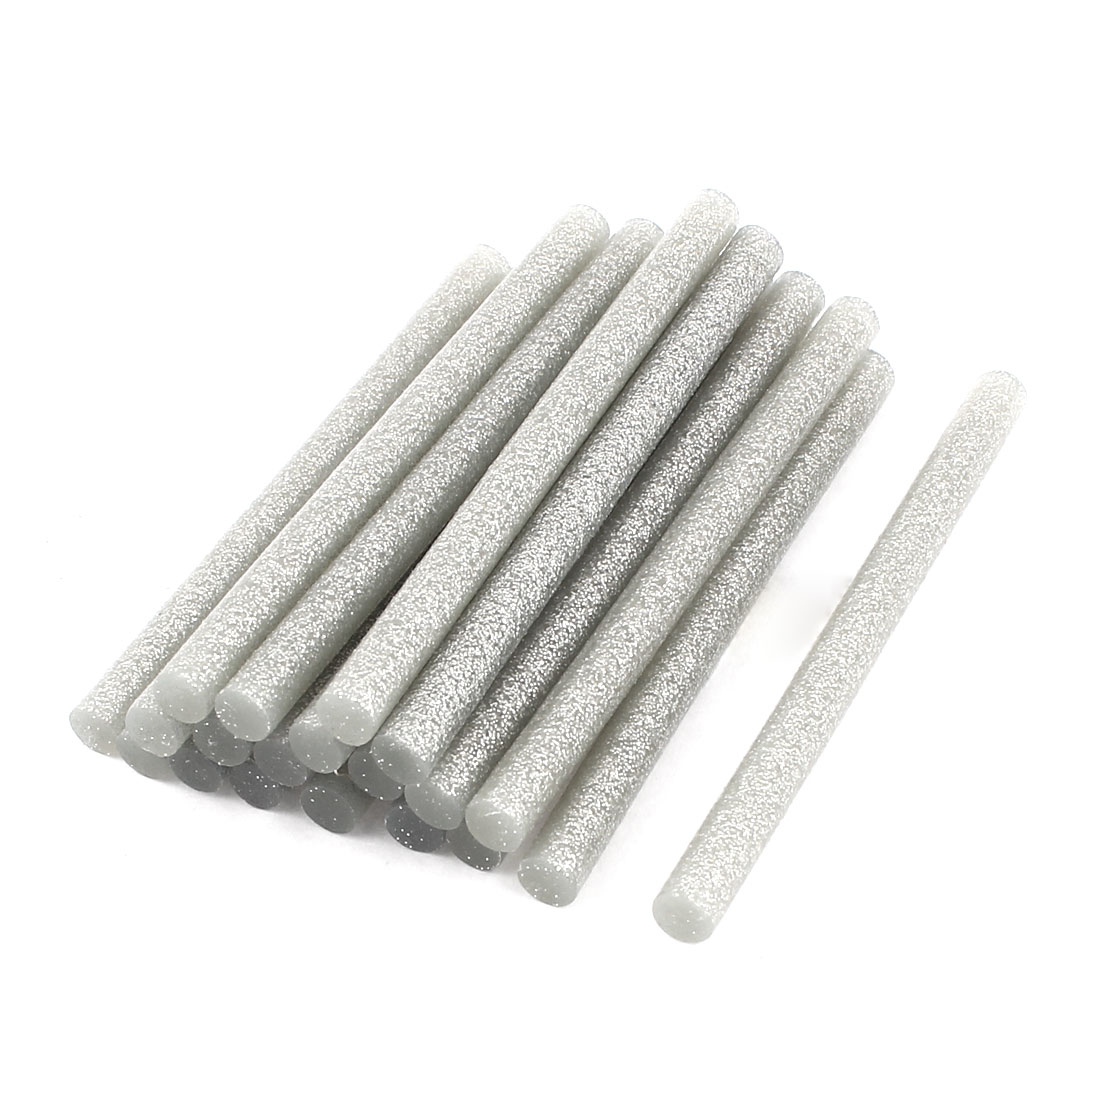 20 Pcs Silver Tone 7mm Diameter 100mm Length Crafting Models Hot Melt Glue Stick